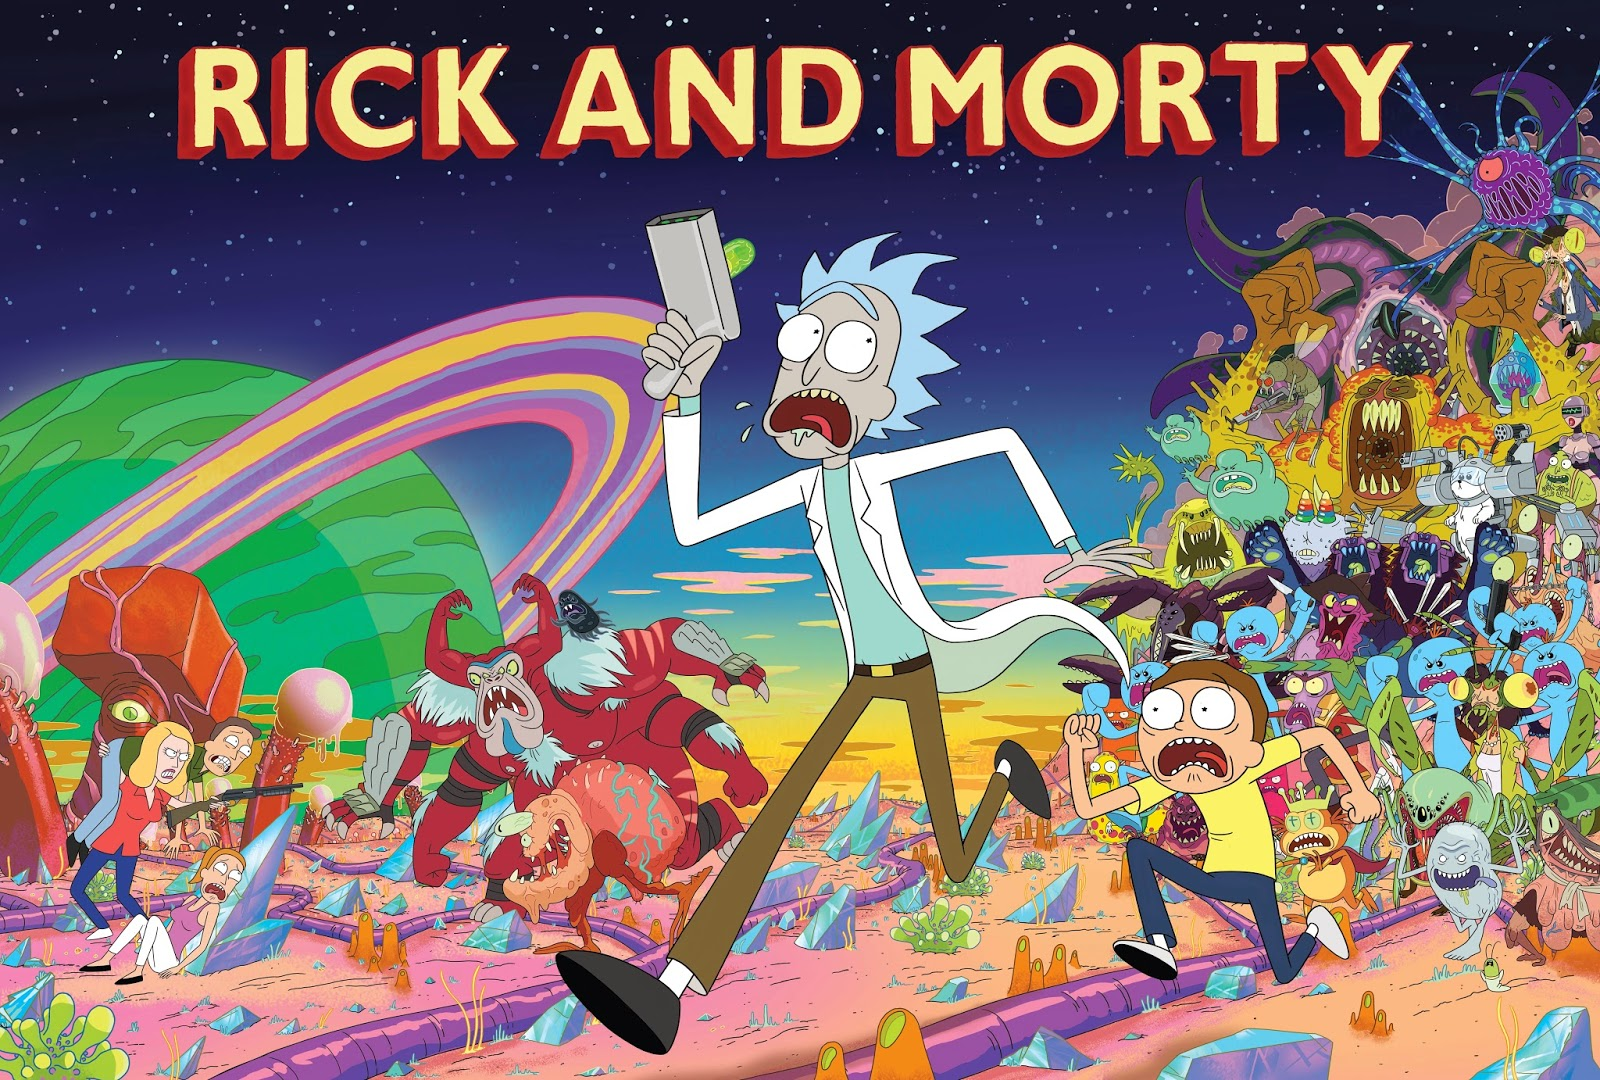 50 1080p Rick And Morty Hd Wallpapers 2019 Topxbestlist Part 2